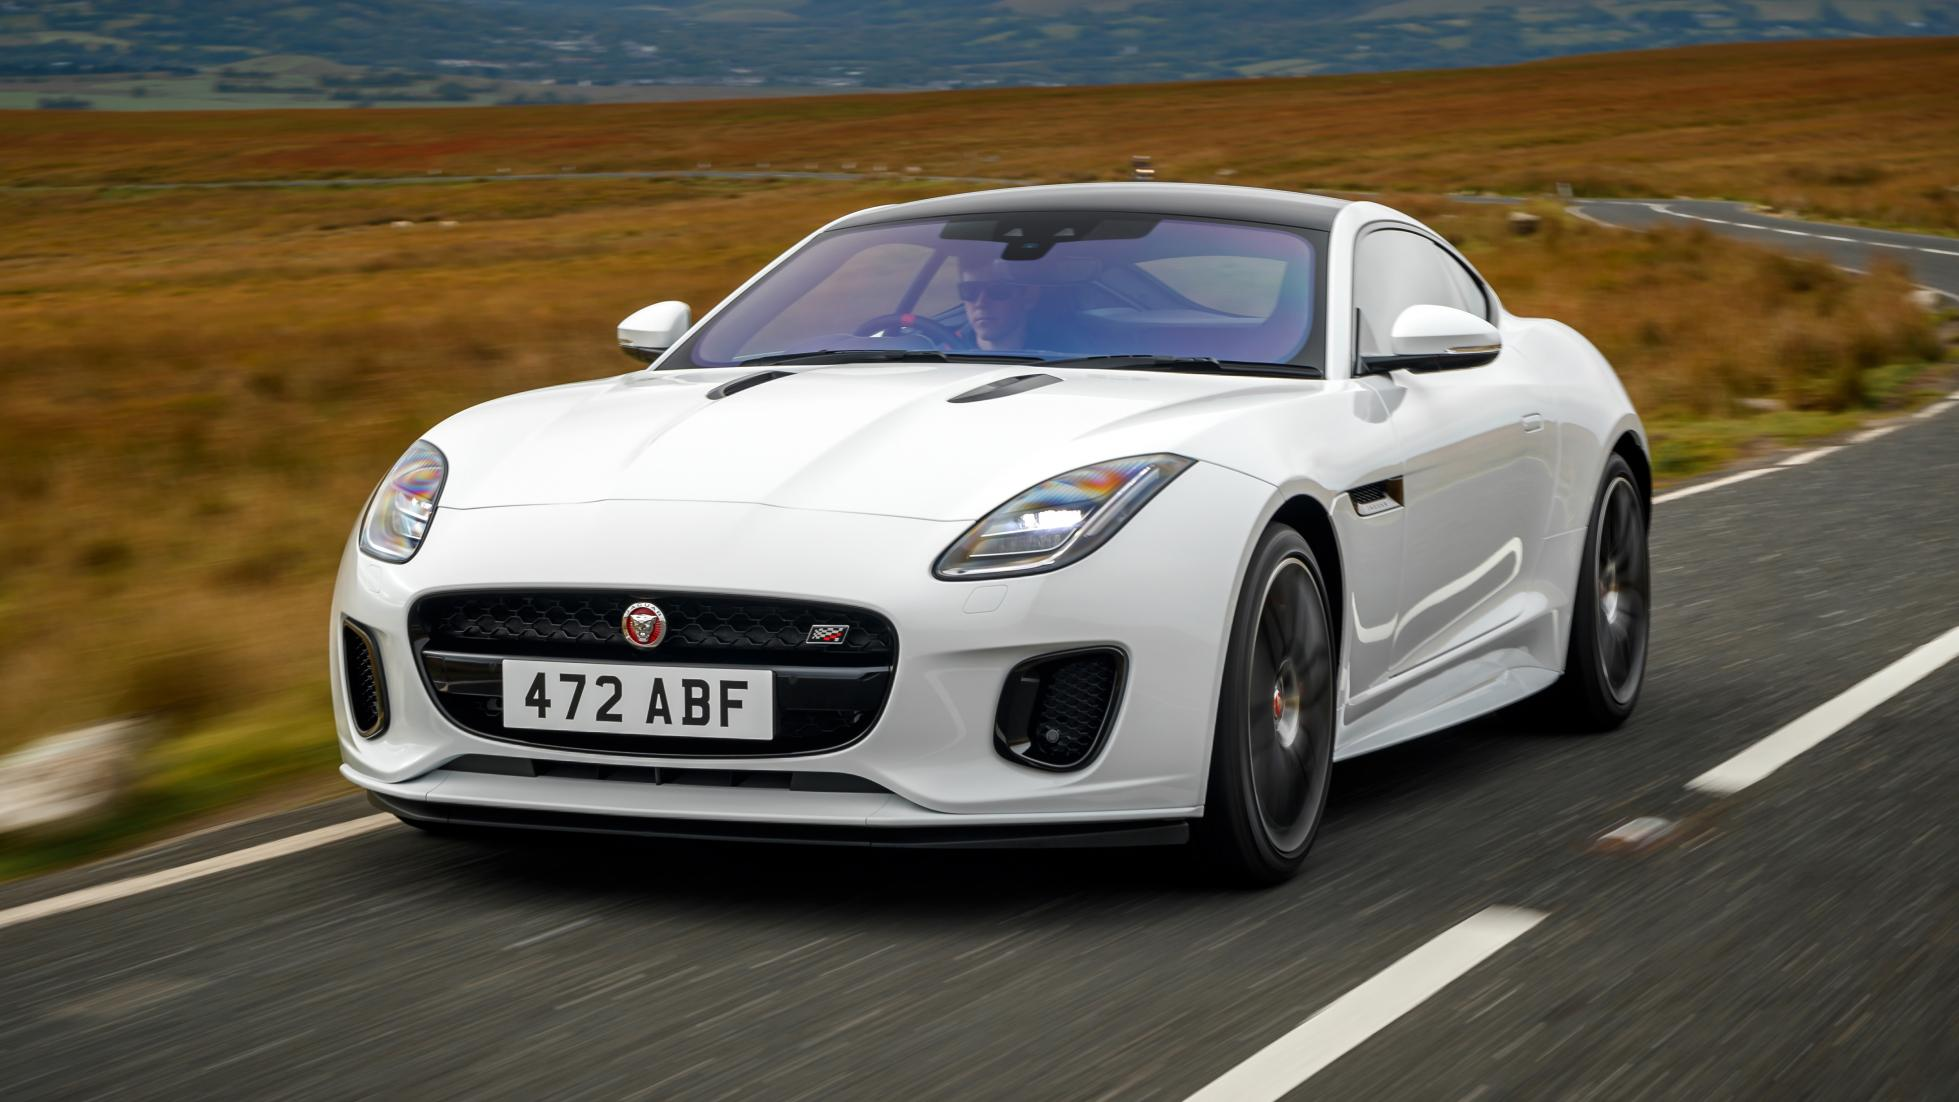 jaguar releases 2020 f-type: price, photos, features, specs